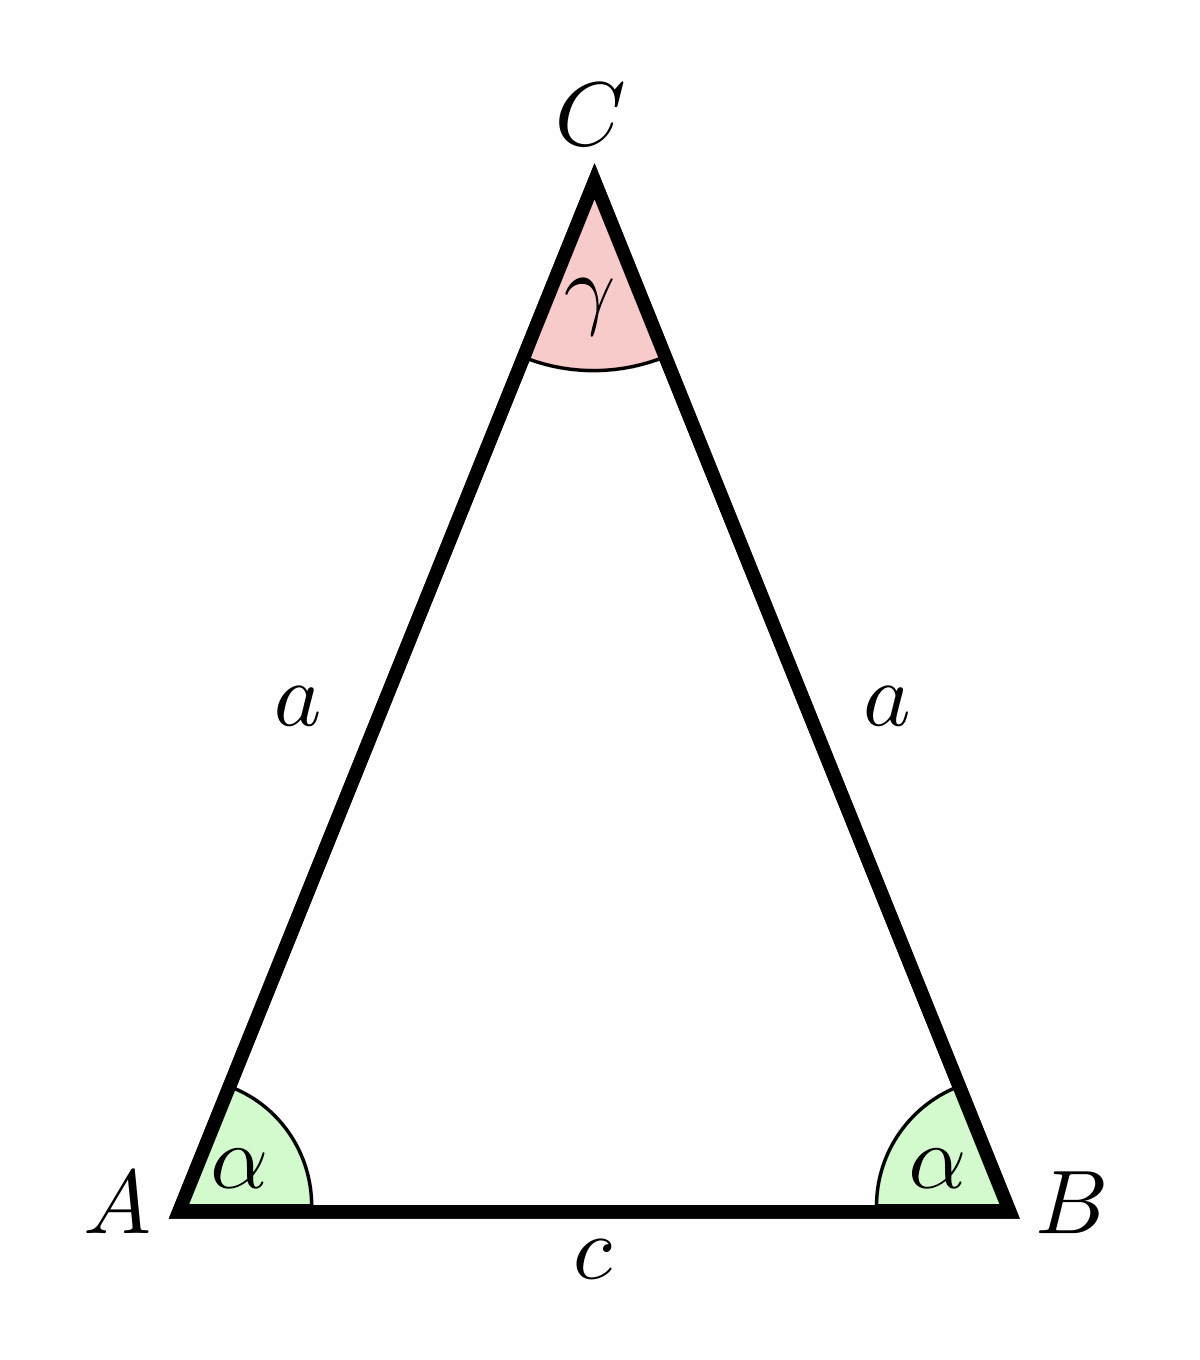 isosceles-triangle-isosceles-re